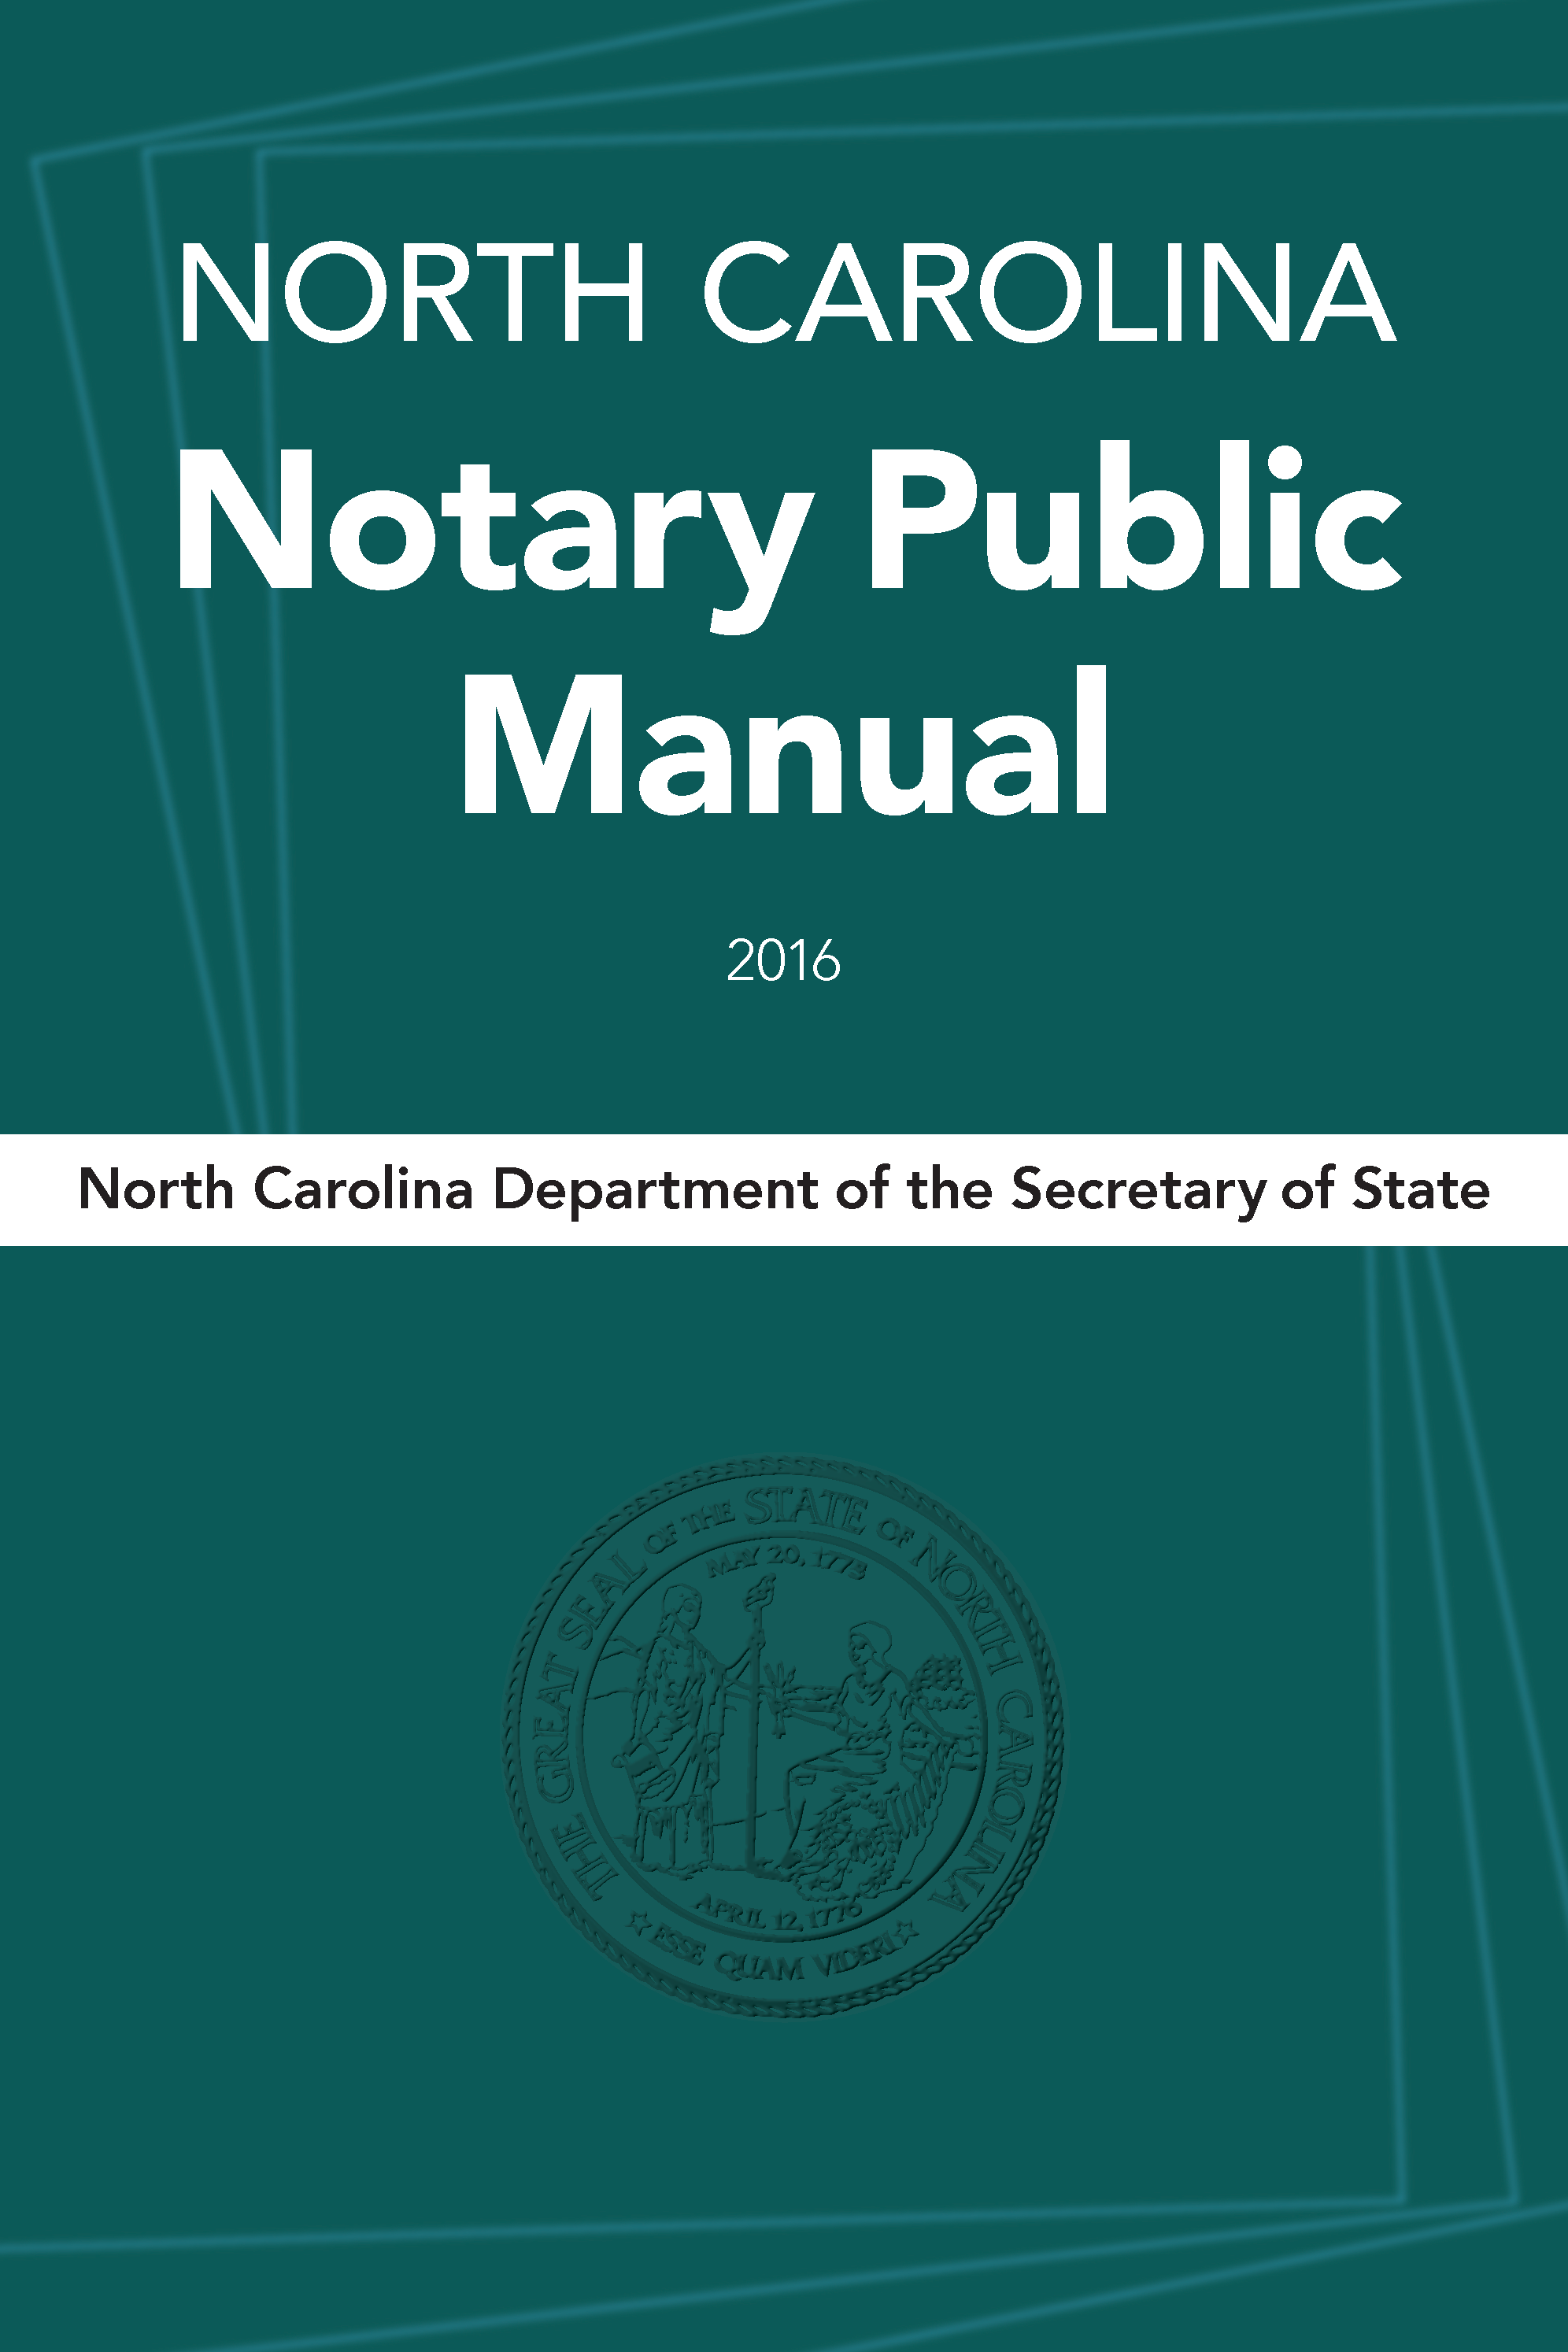 Purchase A North Carolina Notary Public Manual